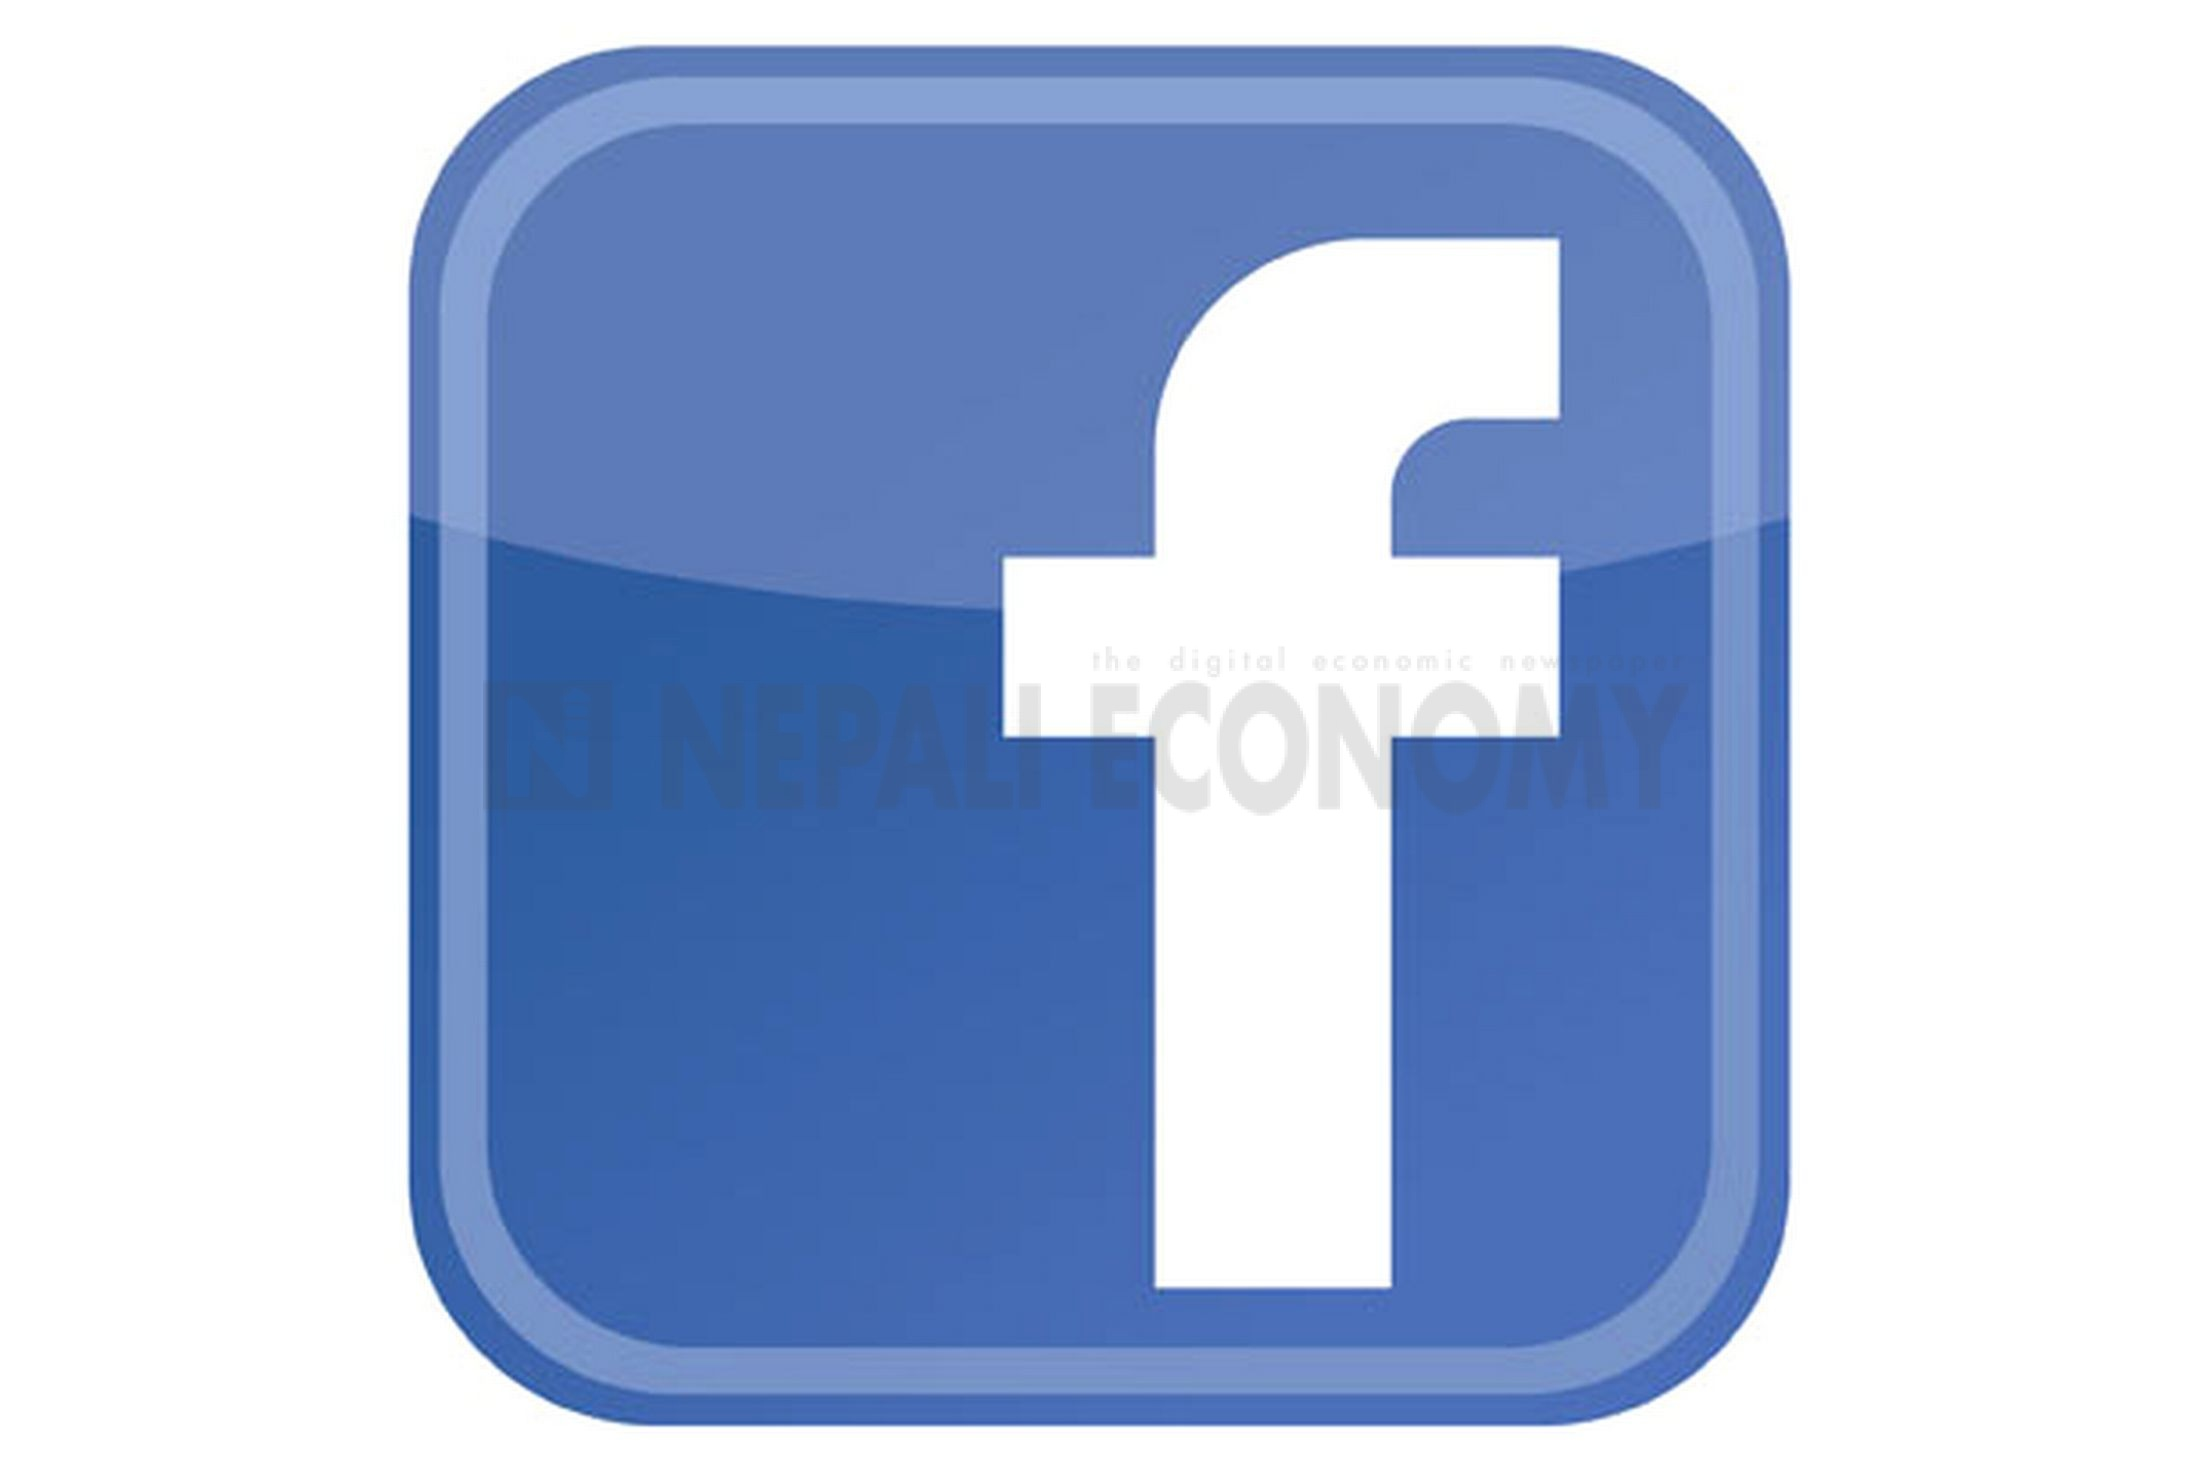 Facebook announces new share offering